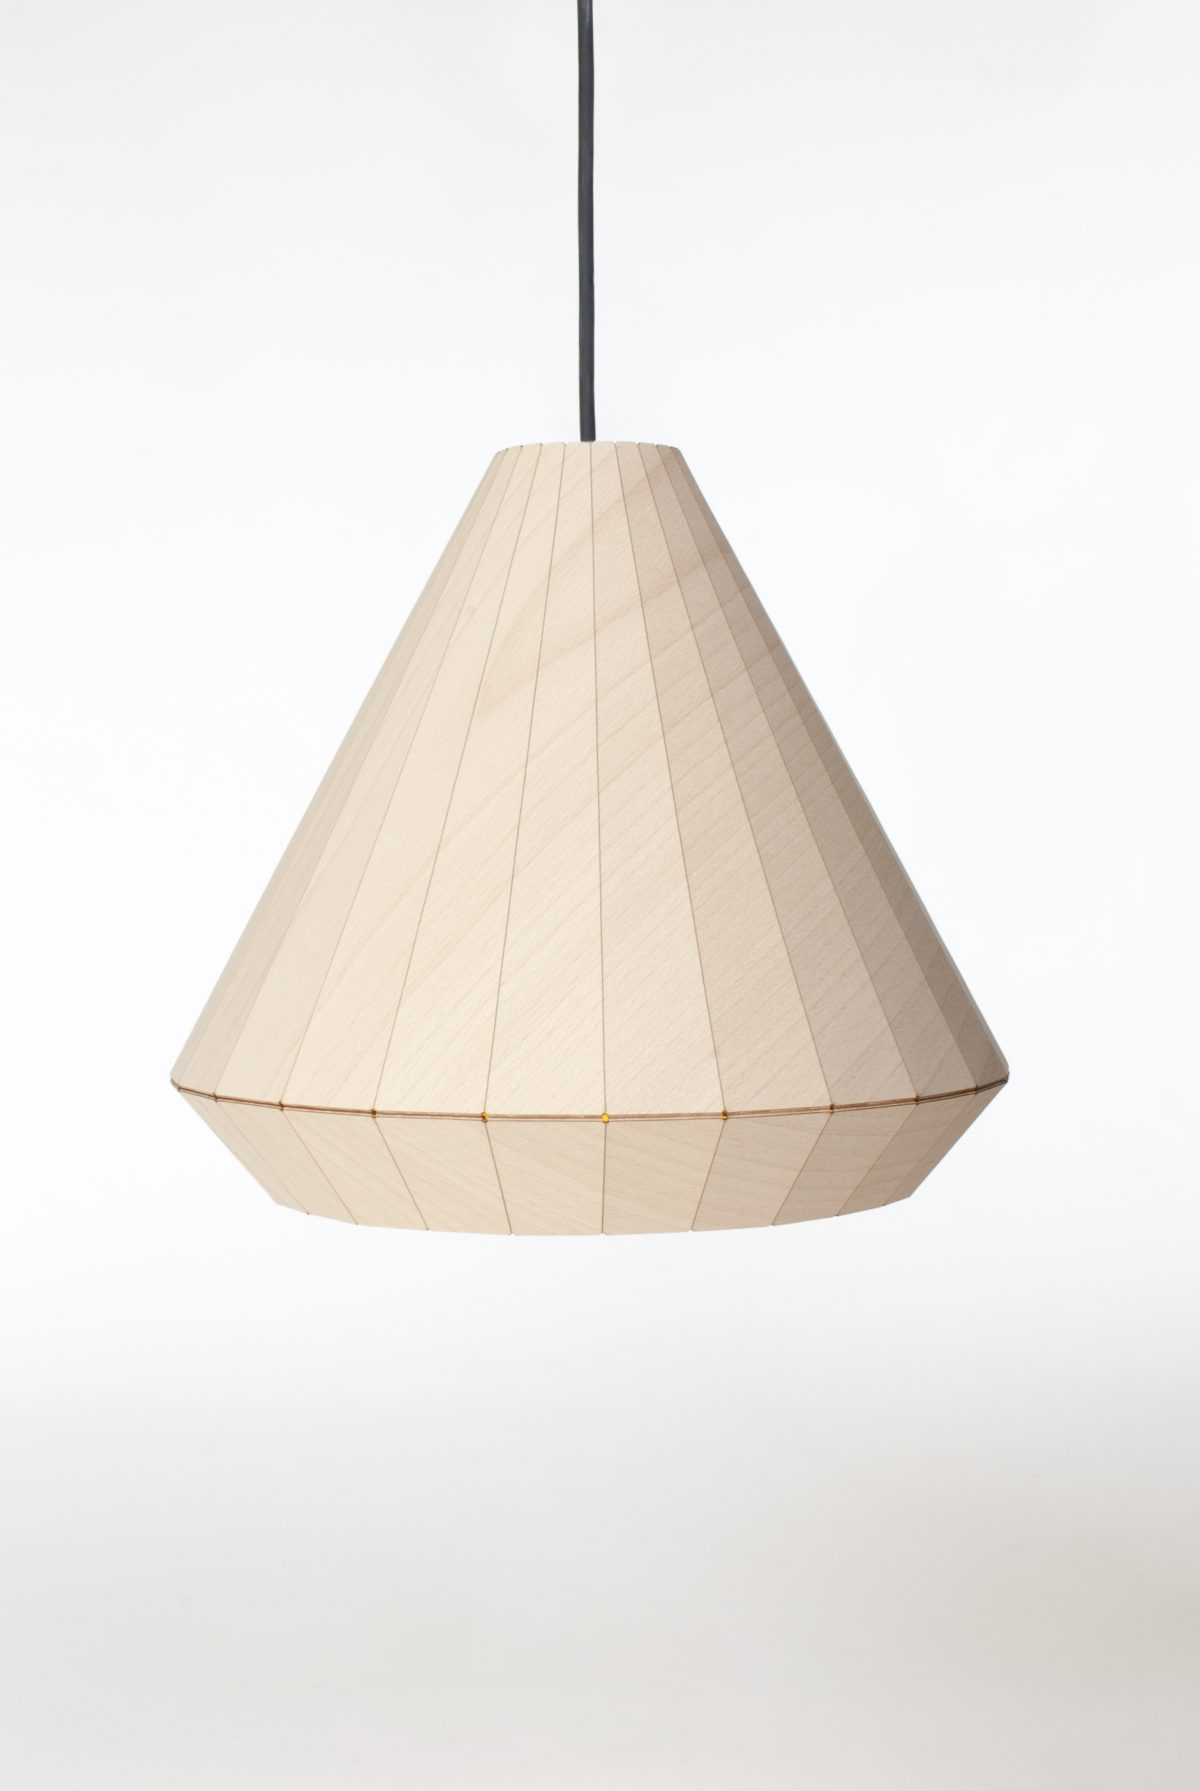 Wooden Light -Front -DavidDerksenDesign